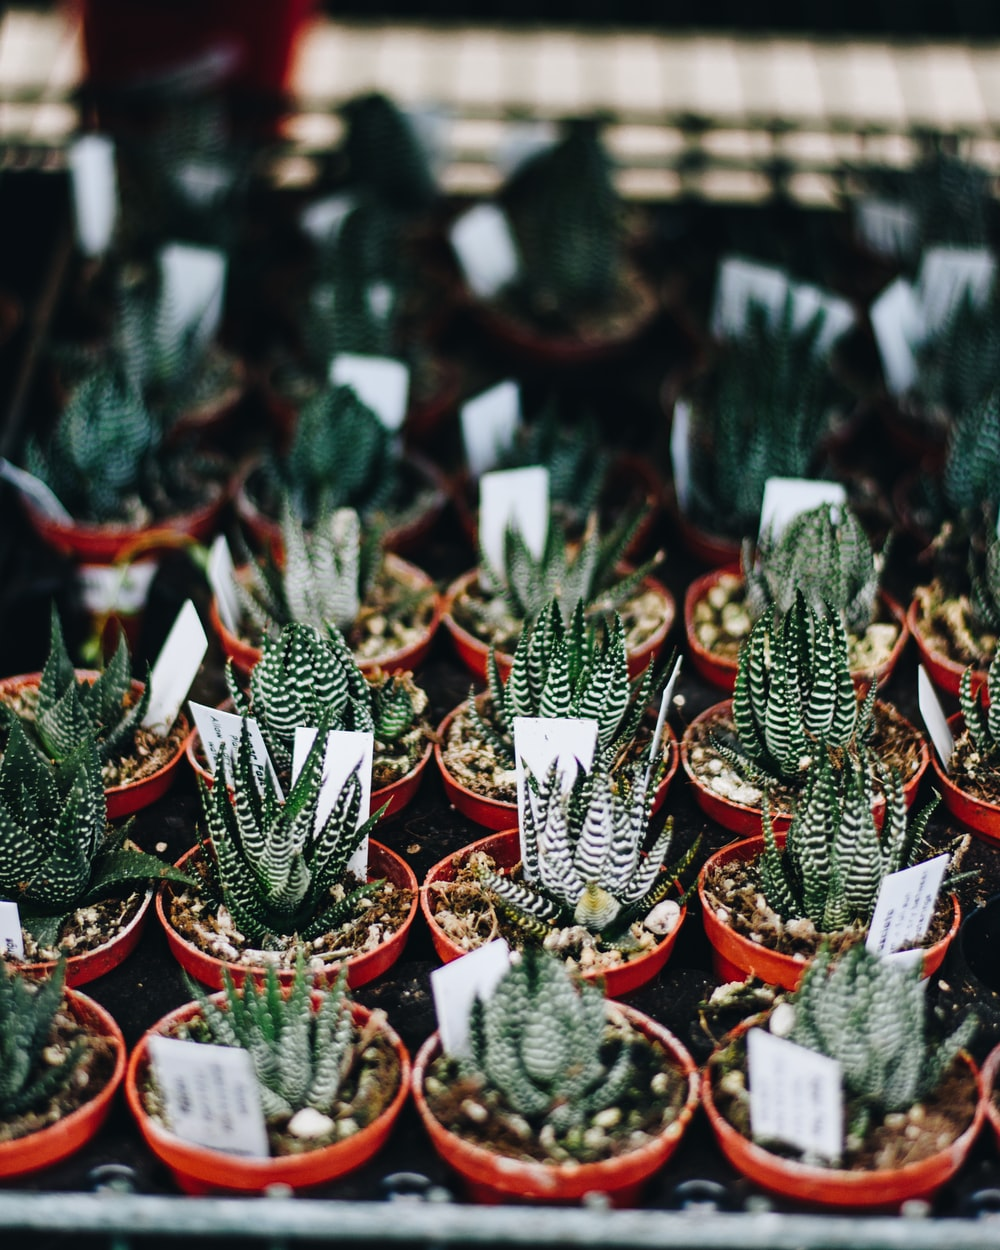 selective focus photo of aloe vera plants